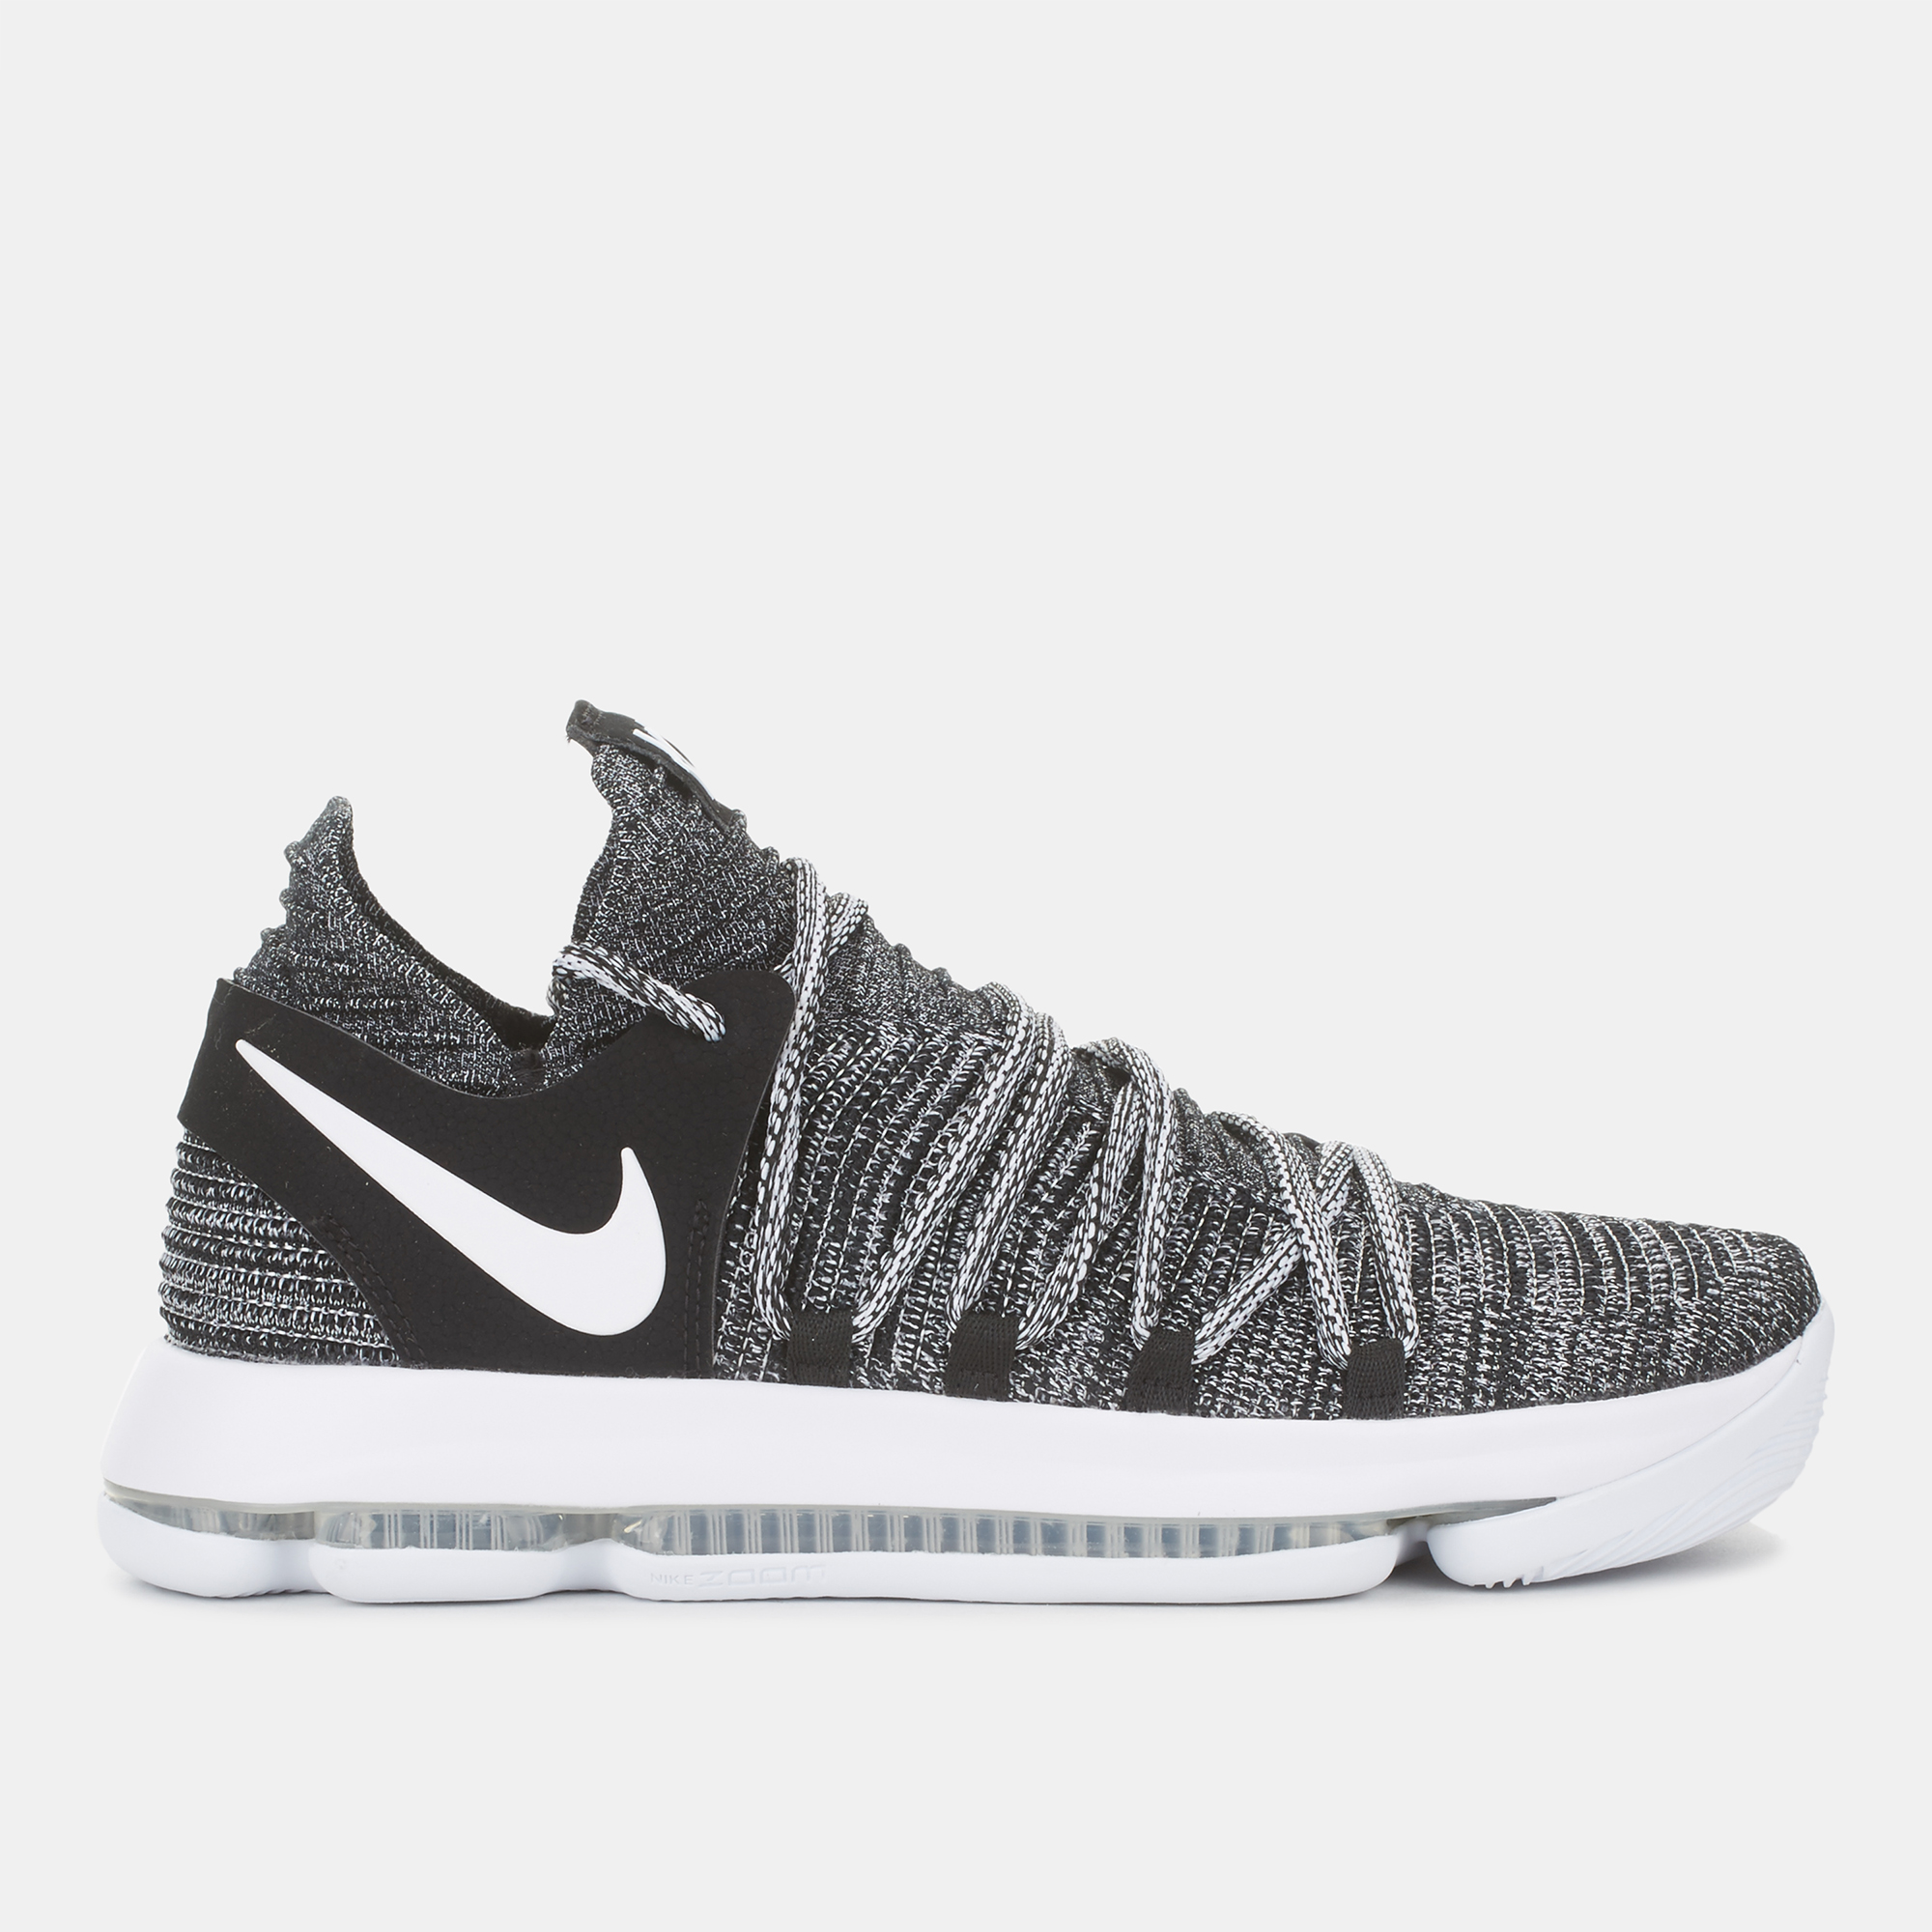 424f8a5e95e Shop Black Nike Zoom KD 10 Basketball Shoe for Mens by Nike